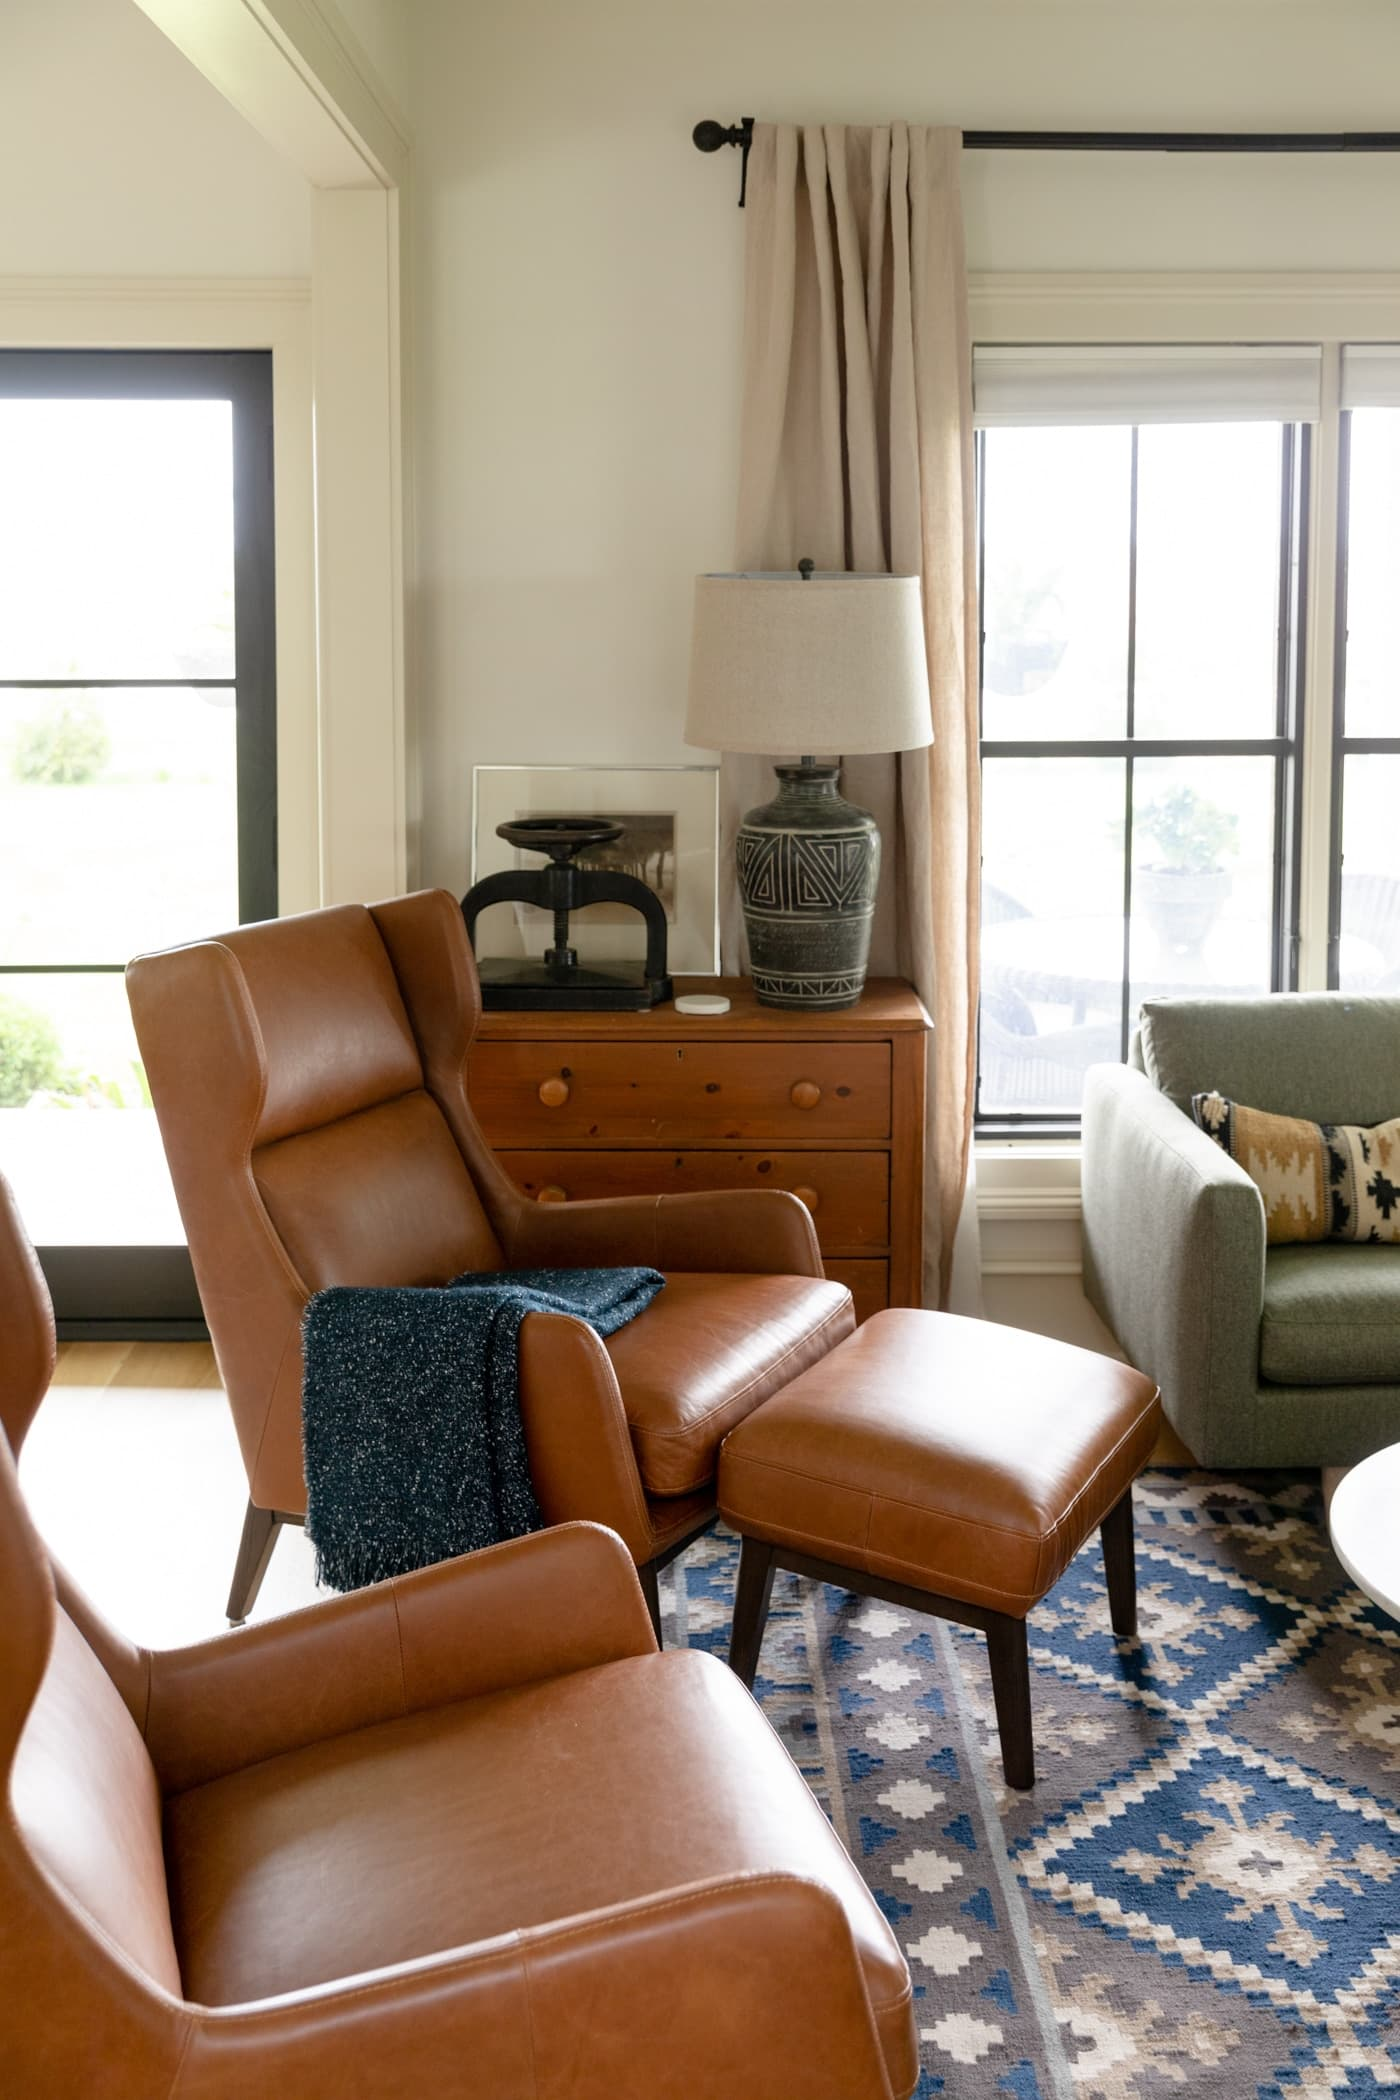 Two brown leather chairs sitting on blue colored rug with pine chest and black French door in background